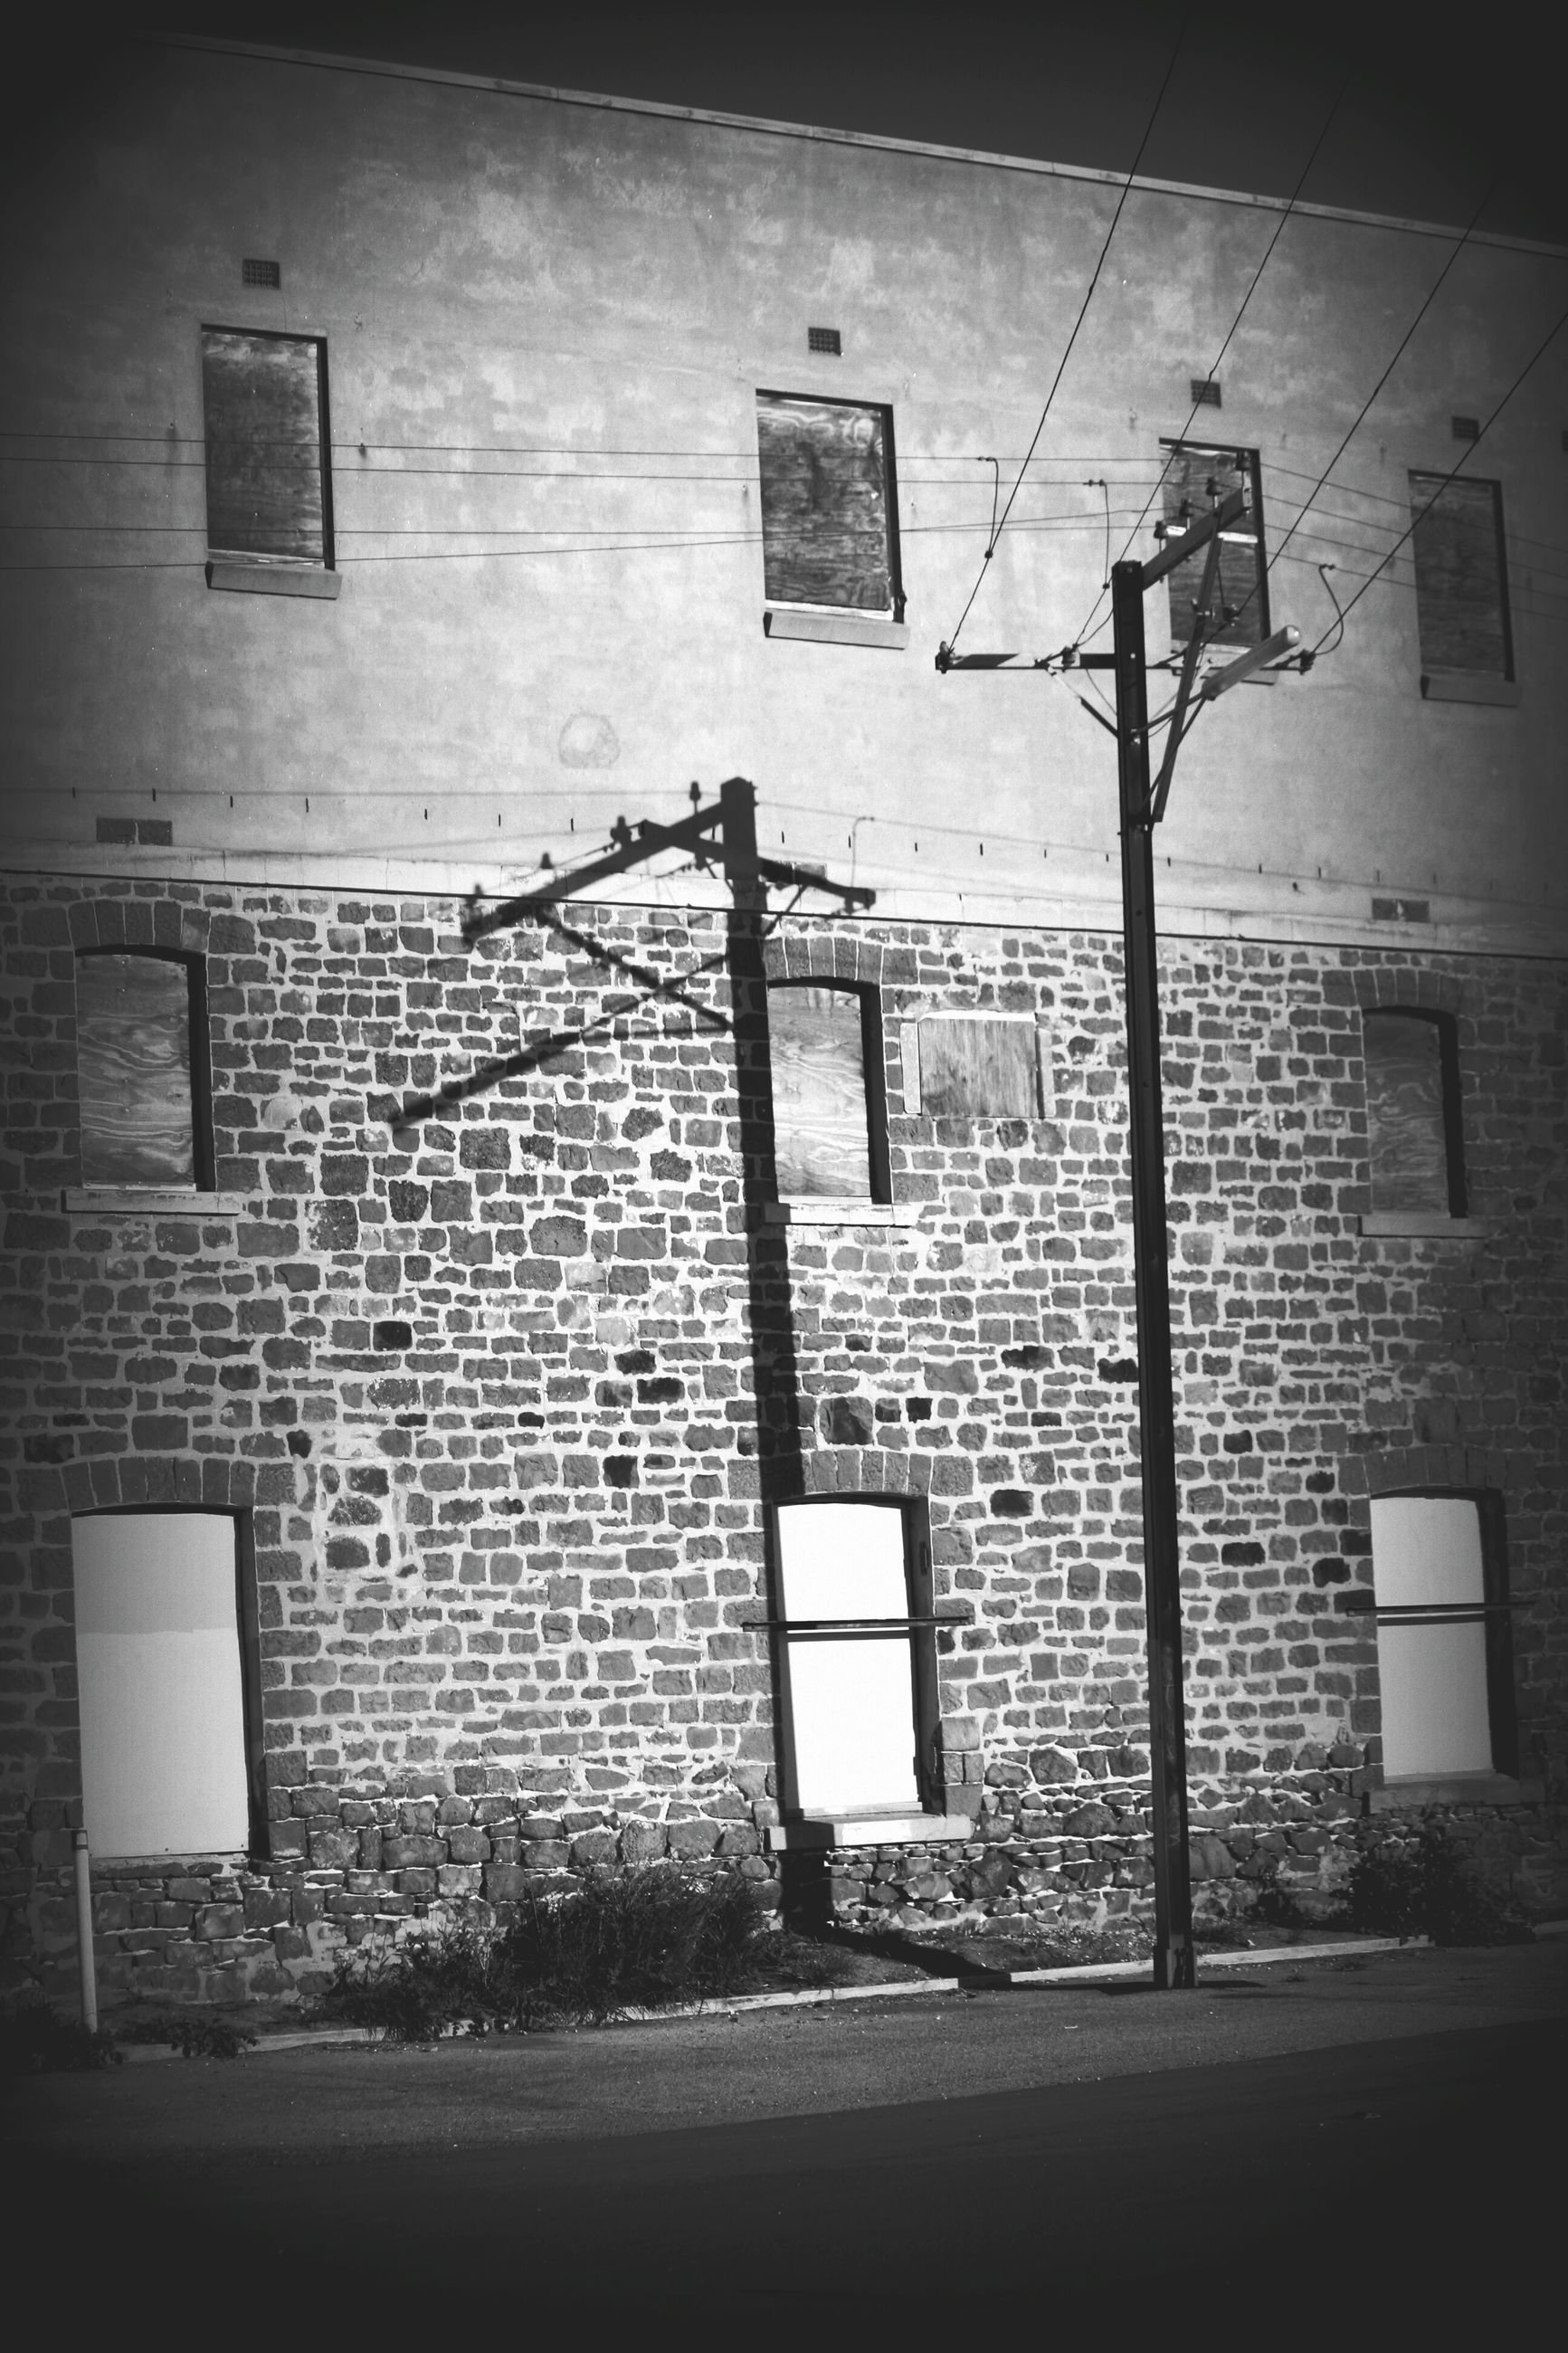 architecture, built structure, building exterior, wall - building feature, brick wall, wall, window, no people, day, house, outdoors, lighting equipment, building, sunlight, shadow, street, old, street light, residential structure, residential building